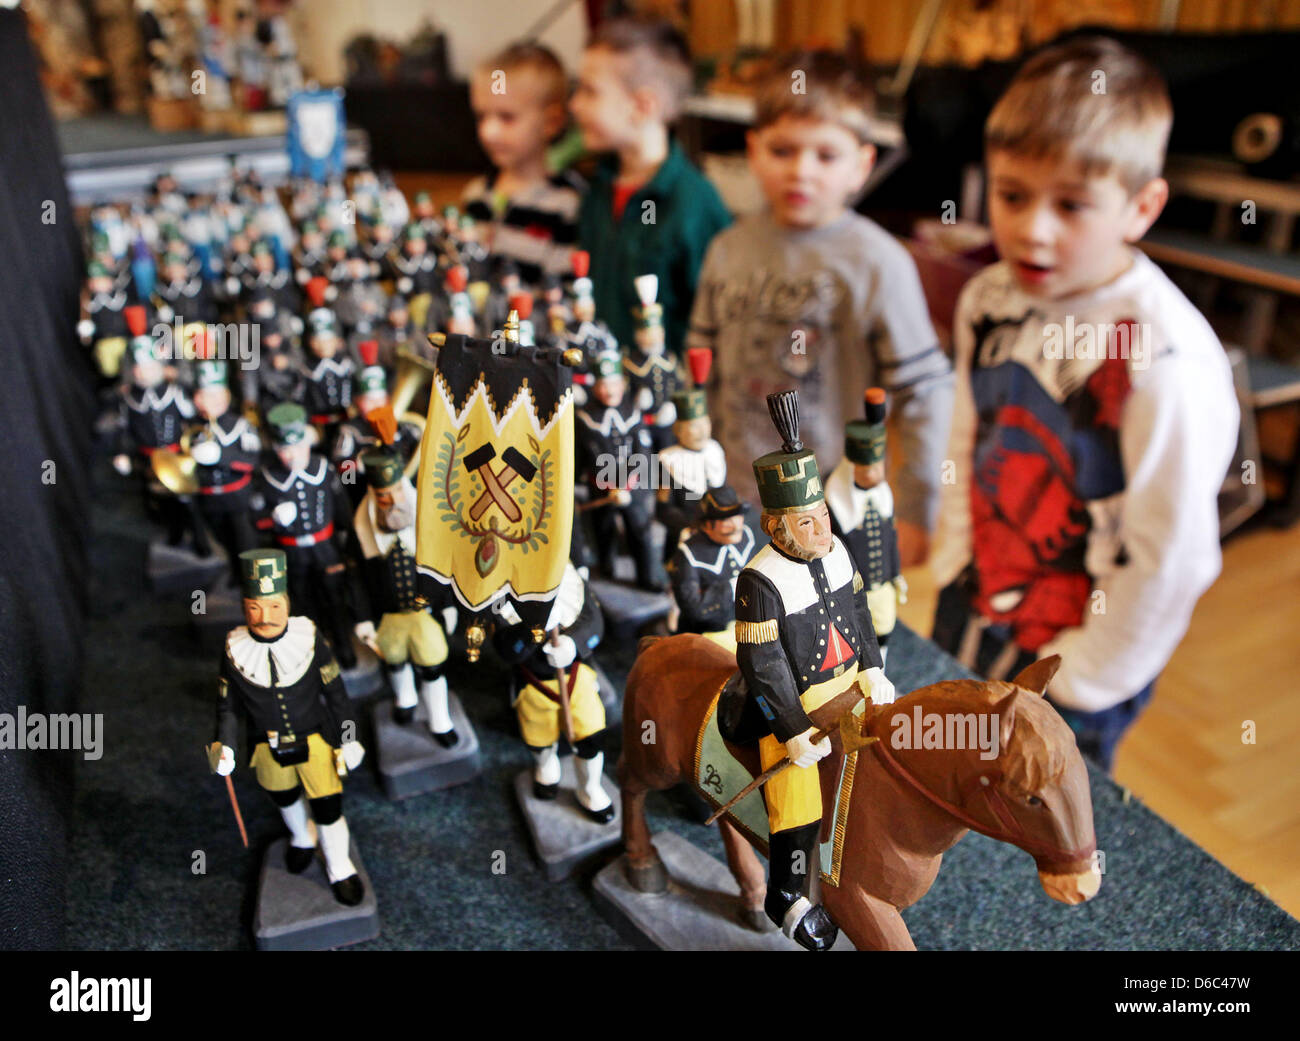 Children view carved figures at the exhibition 'Carving Region Ore Mountains' in Annaberg-Buchholz, Germany, - Stock Image